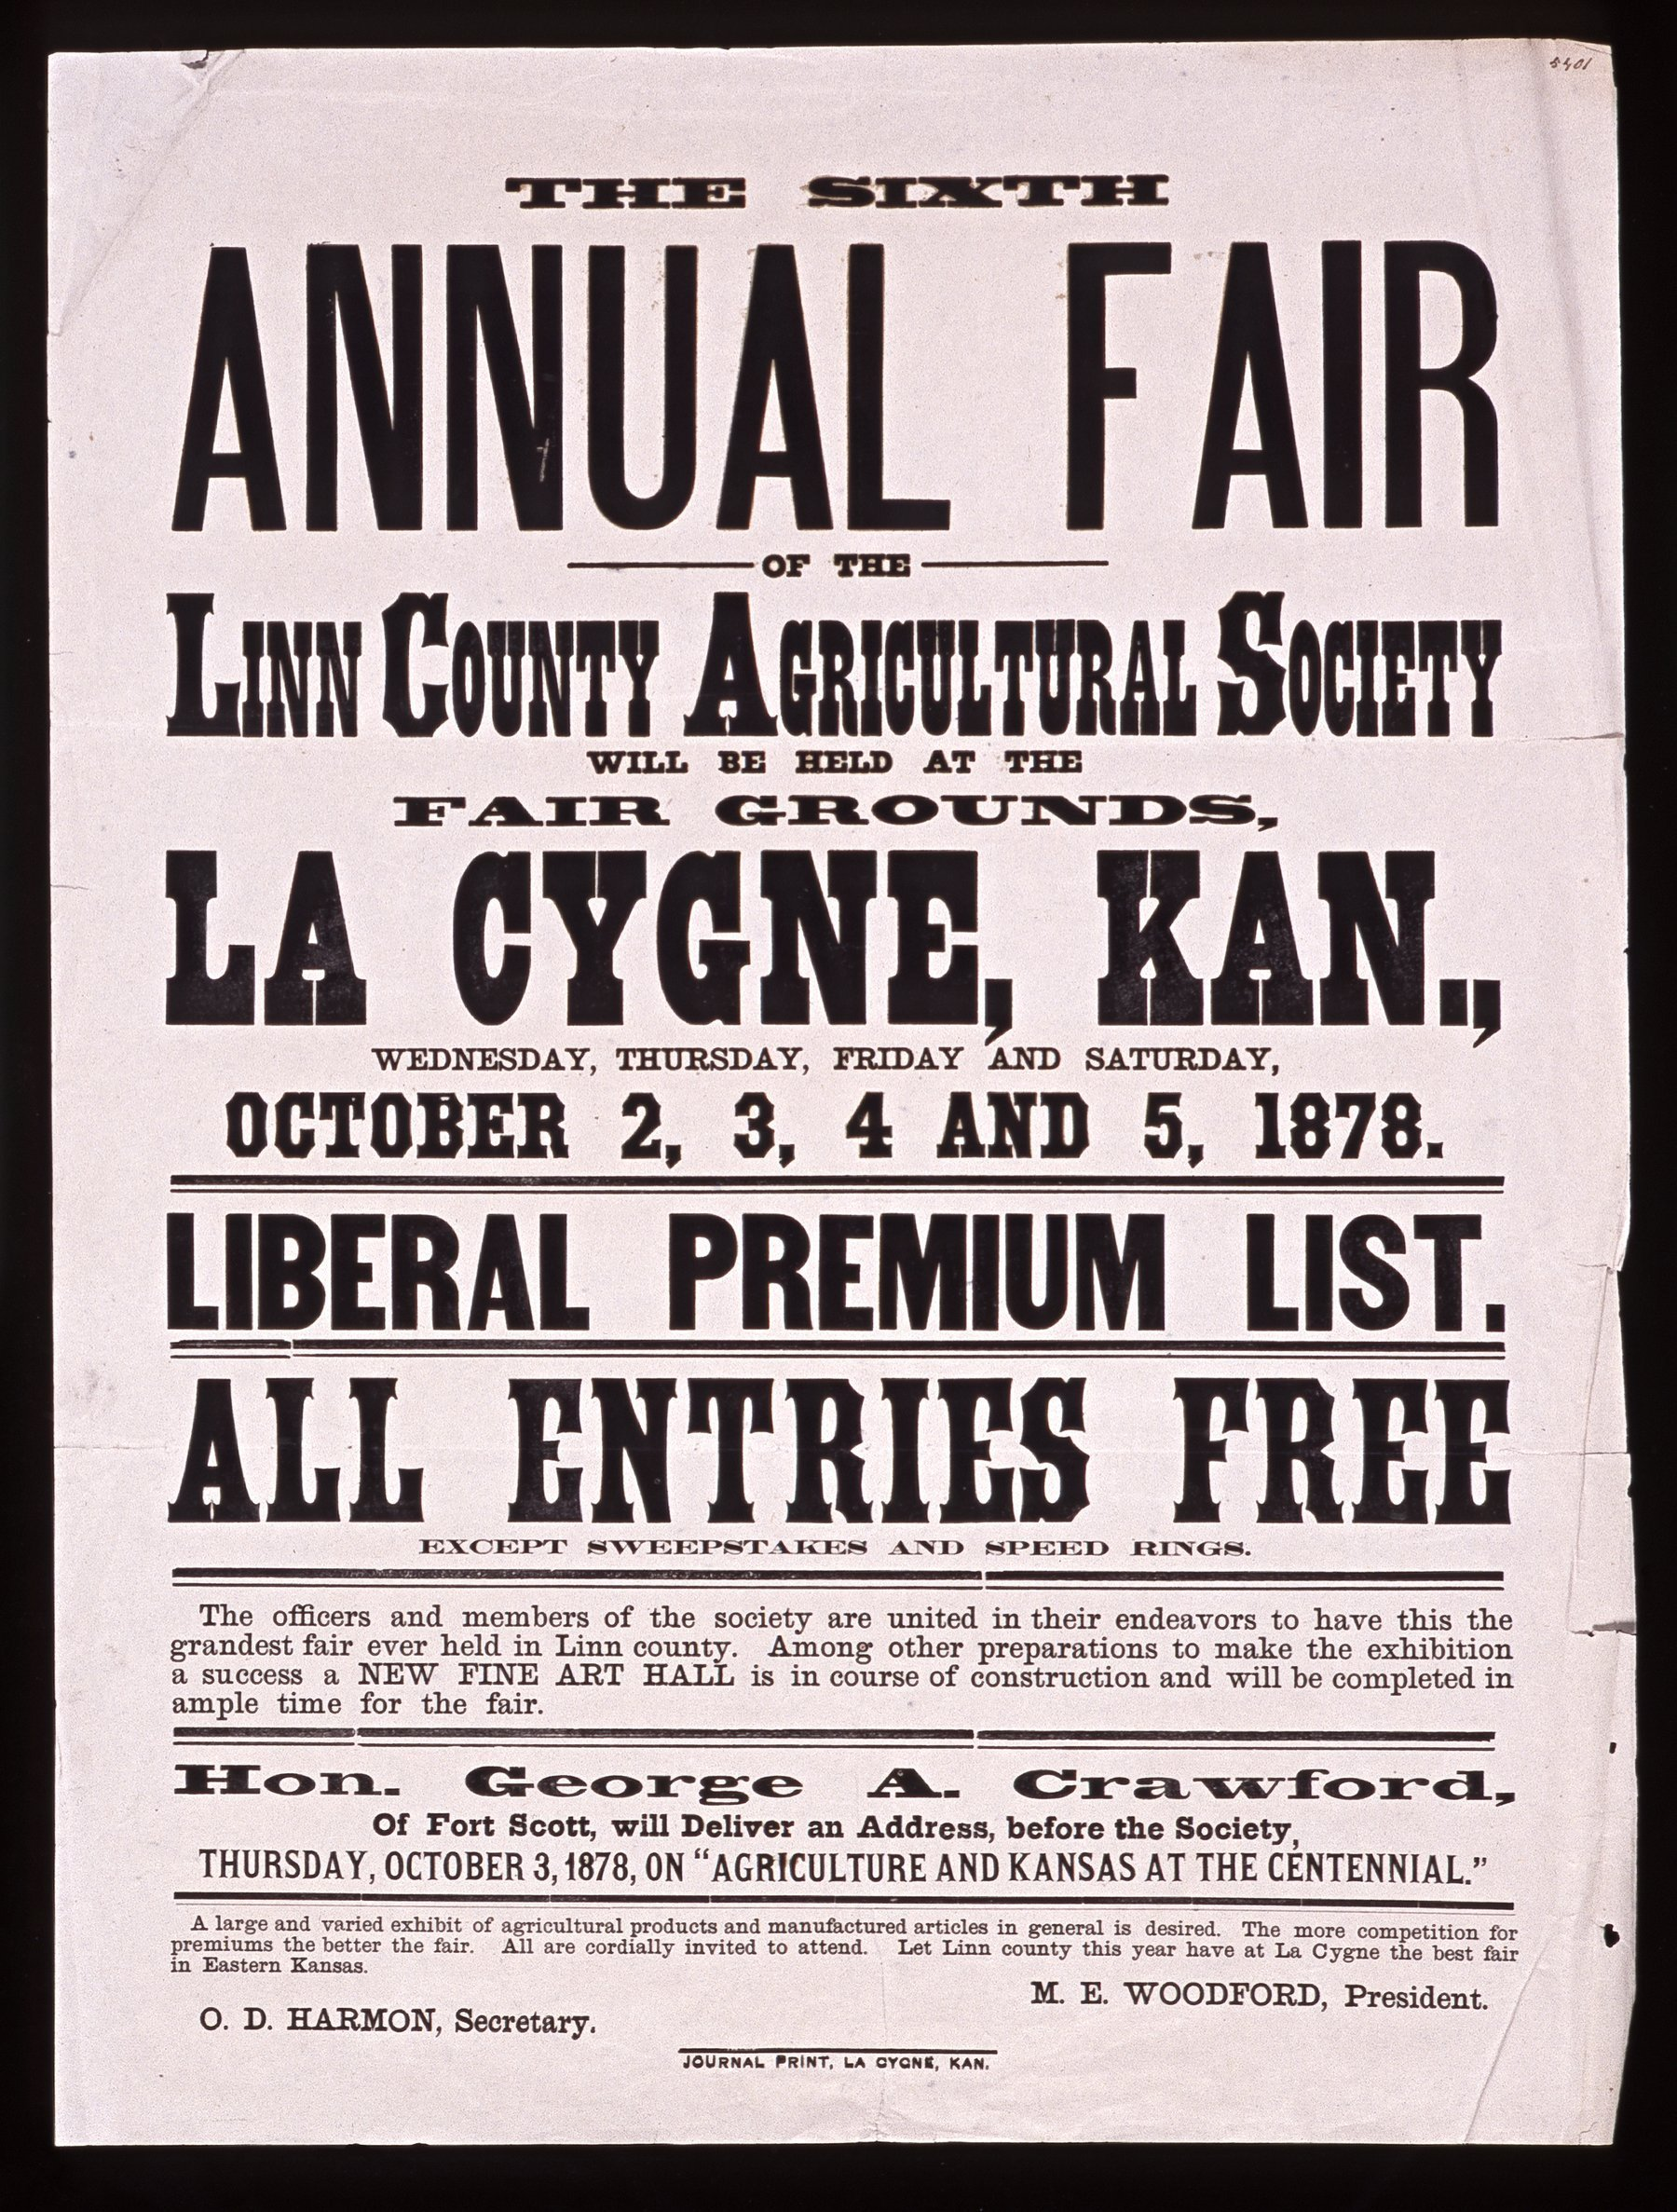 The sixth annual fair of the Linn County Agricultural Society